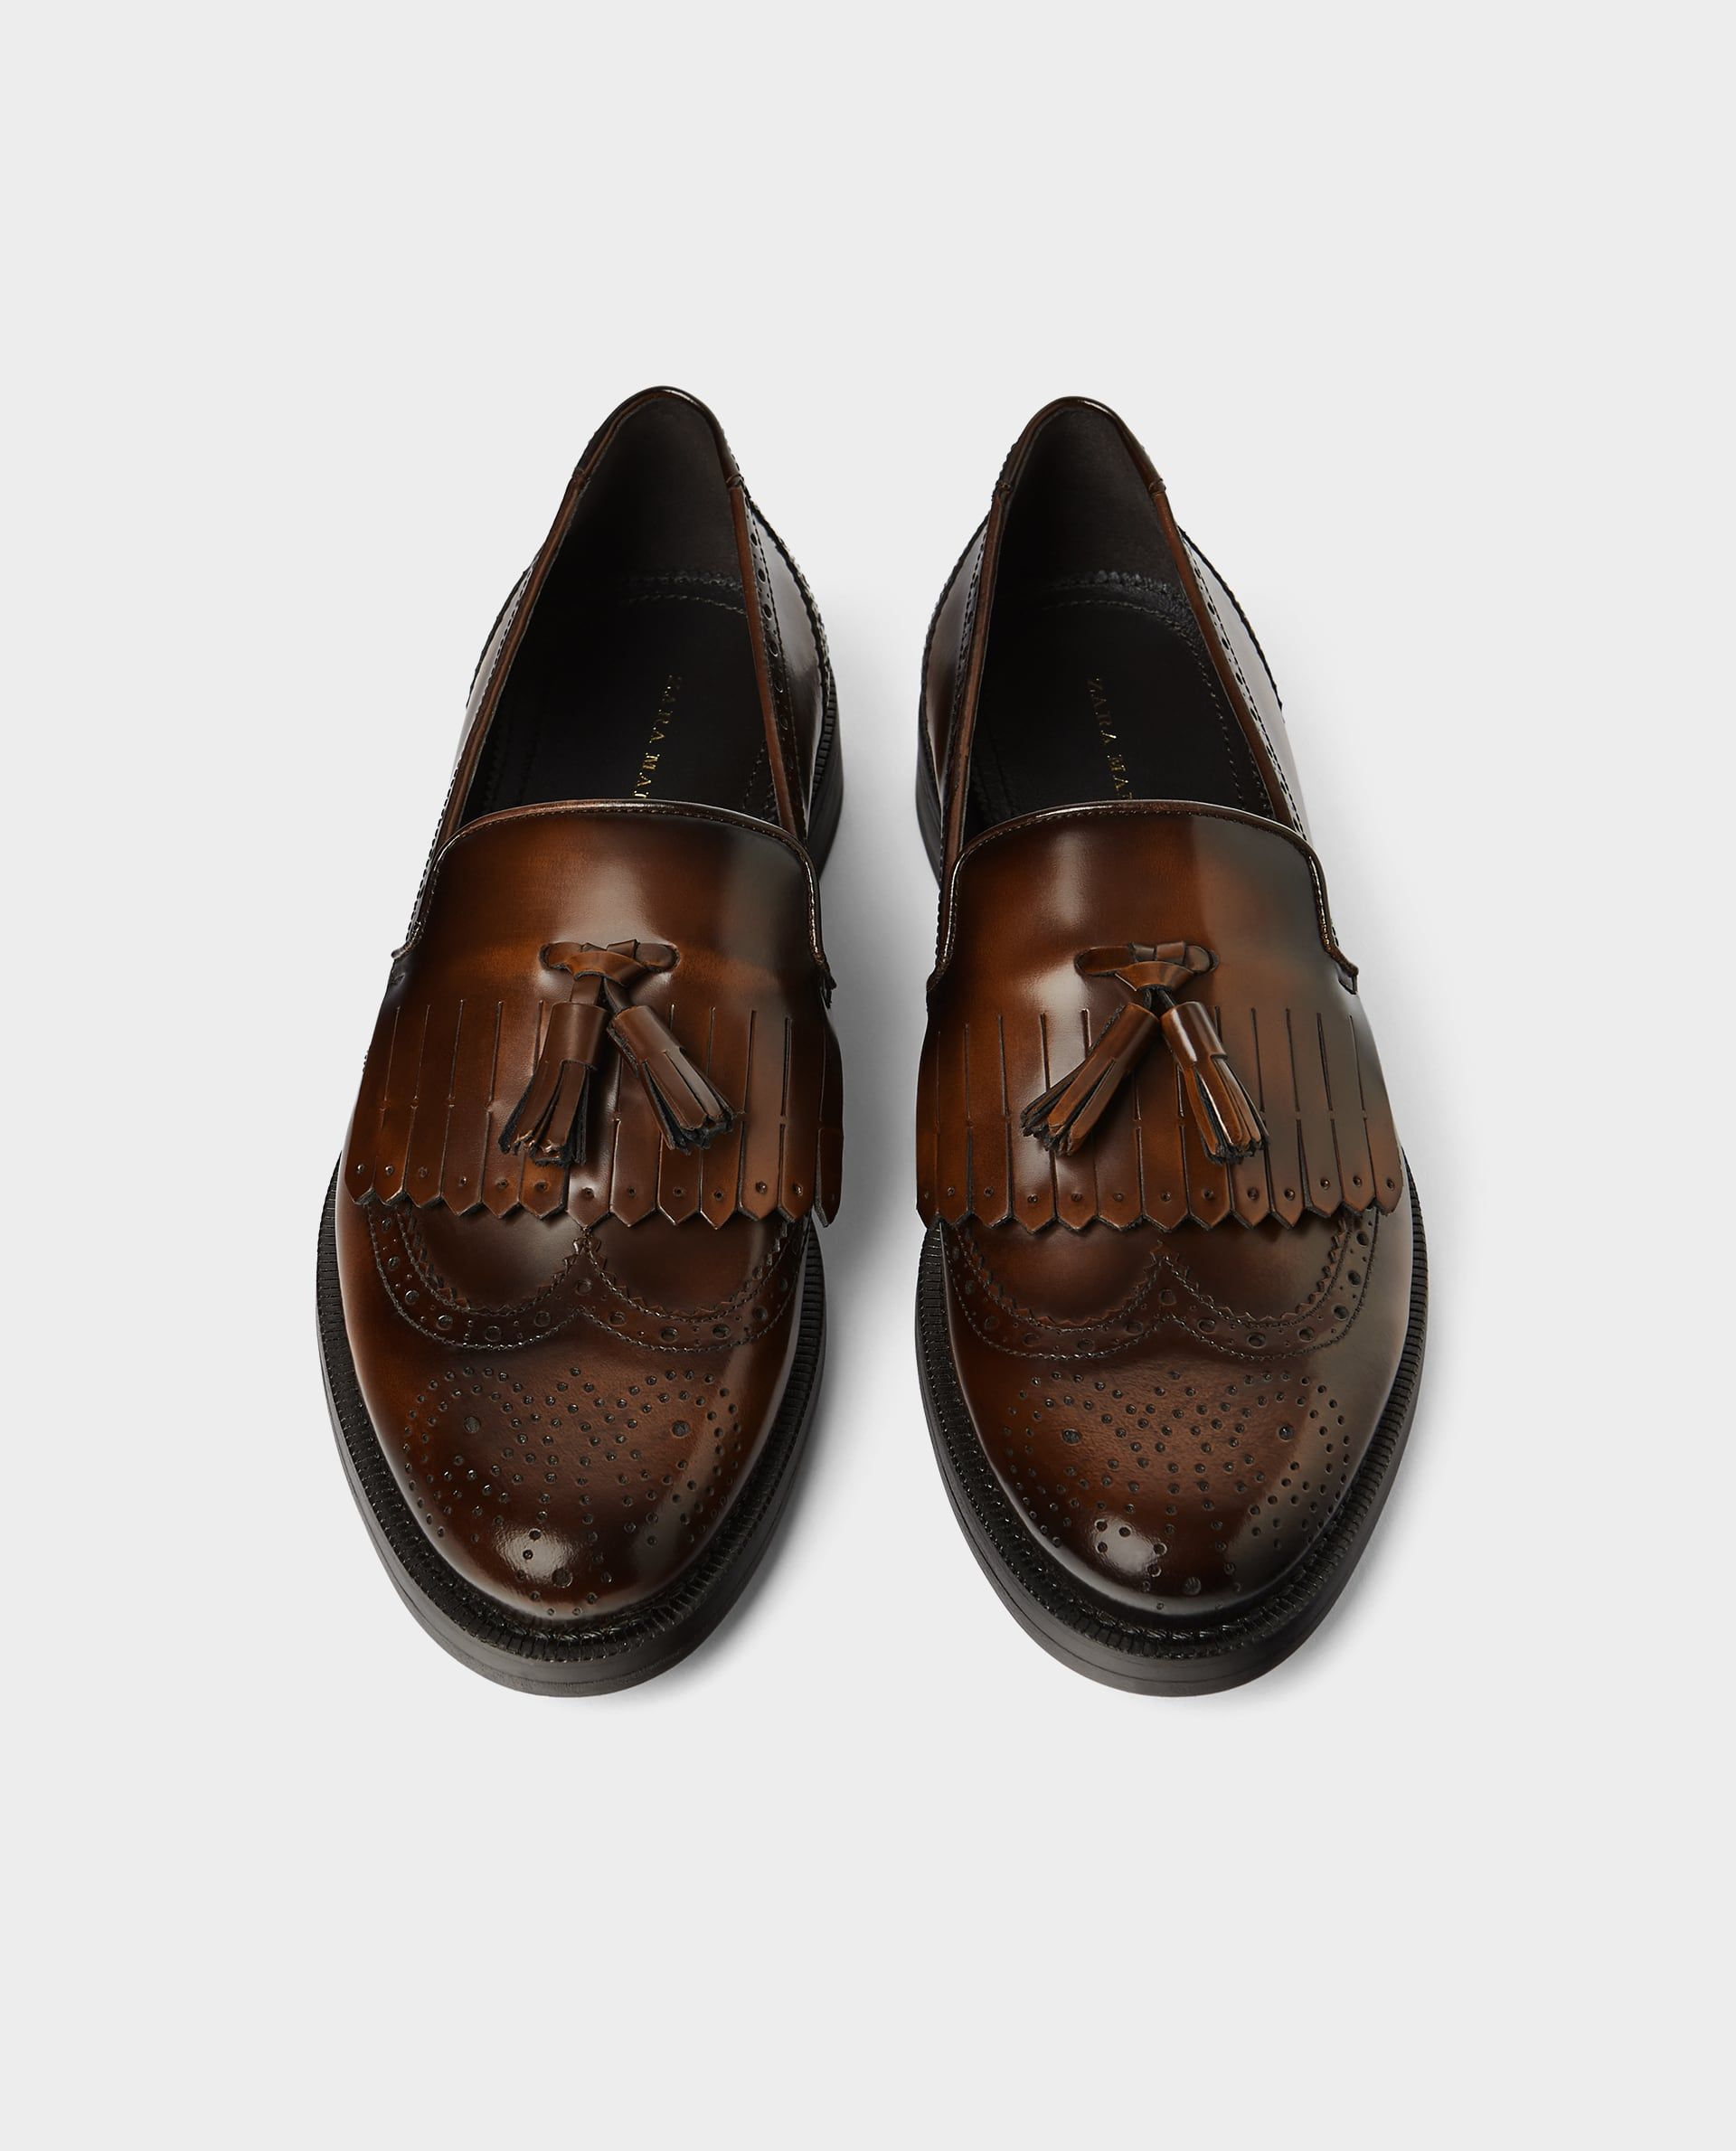 91075932d7442 Brogued leather loafer | Wardrobe | Loafers, Leather loafers ...